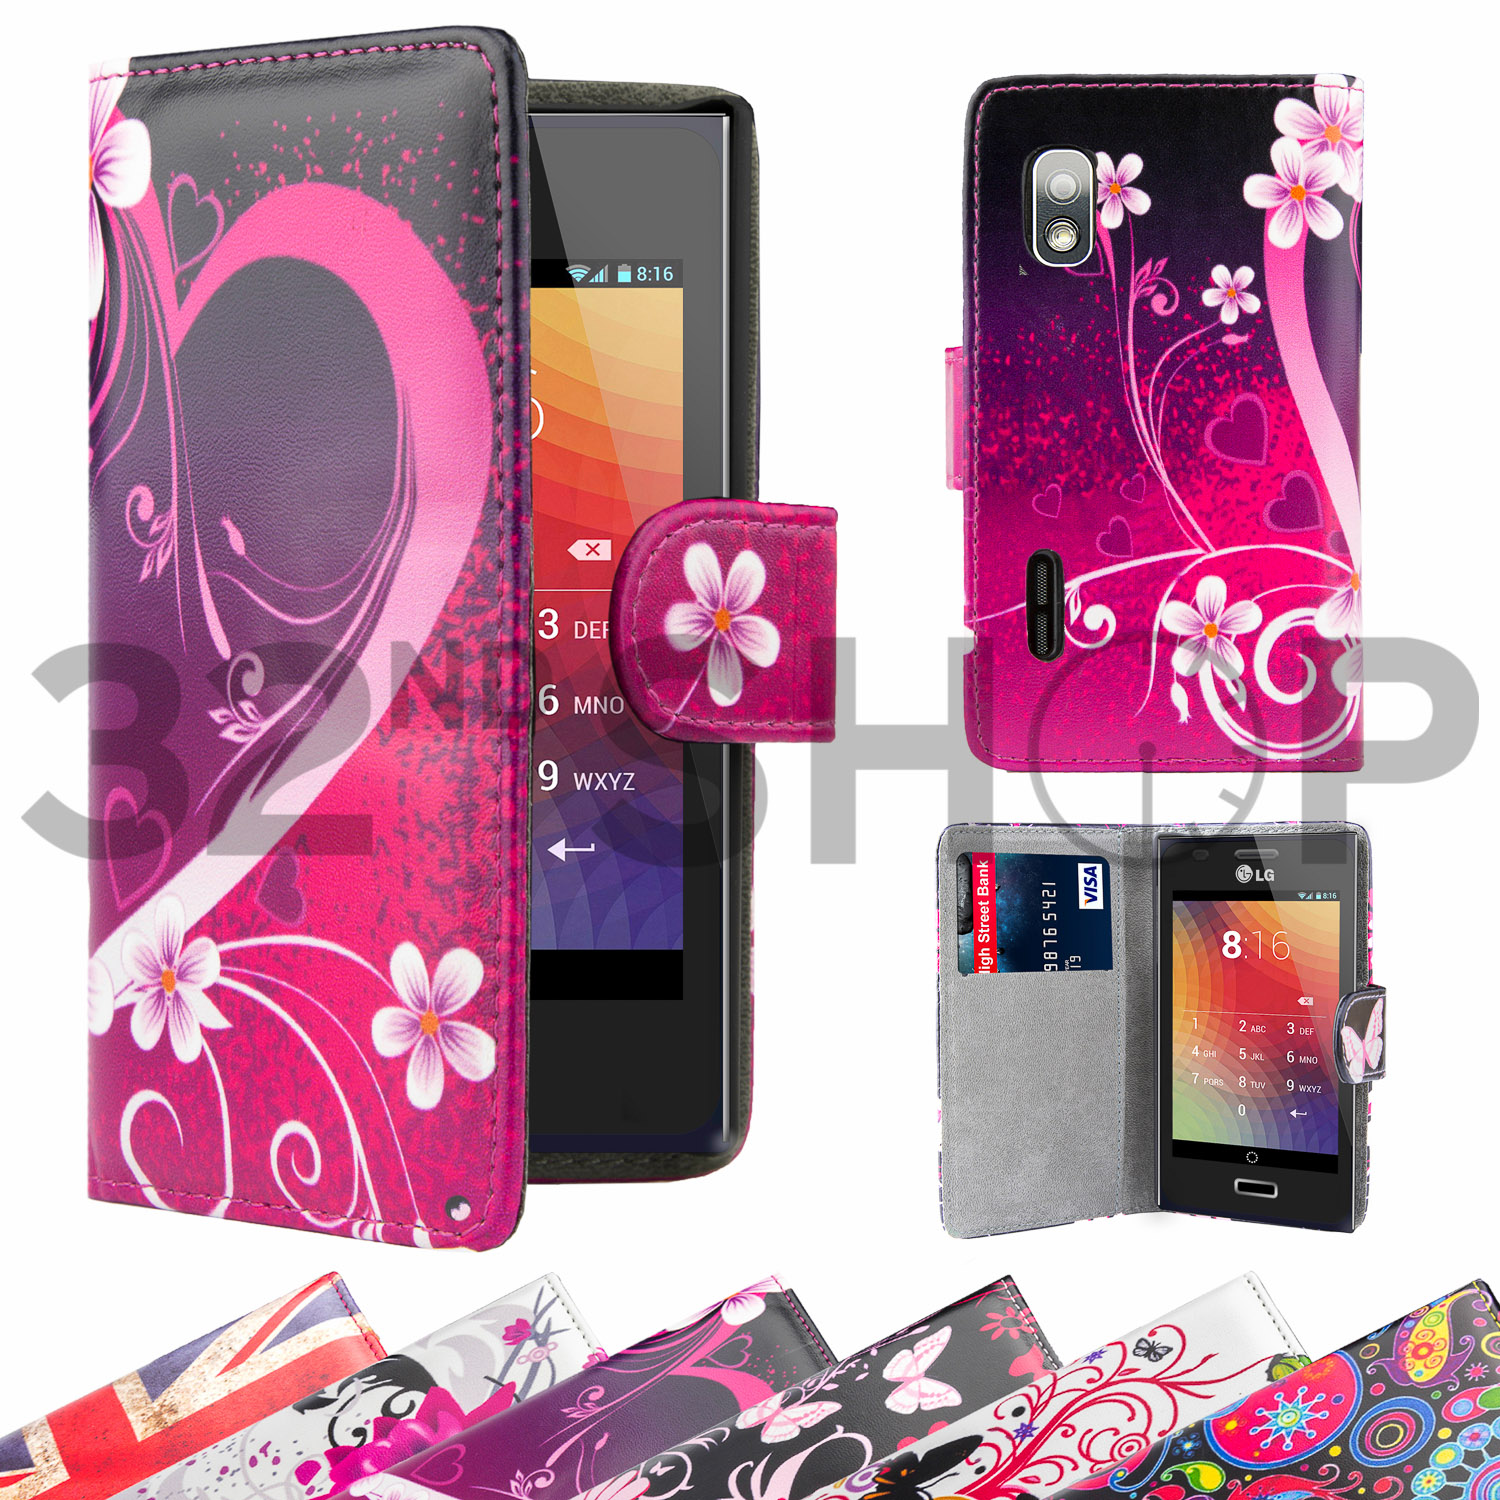 Porte feuille housse tui clapet en cuir synth tique for Housse lg optimus l5 e610